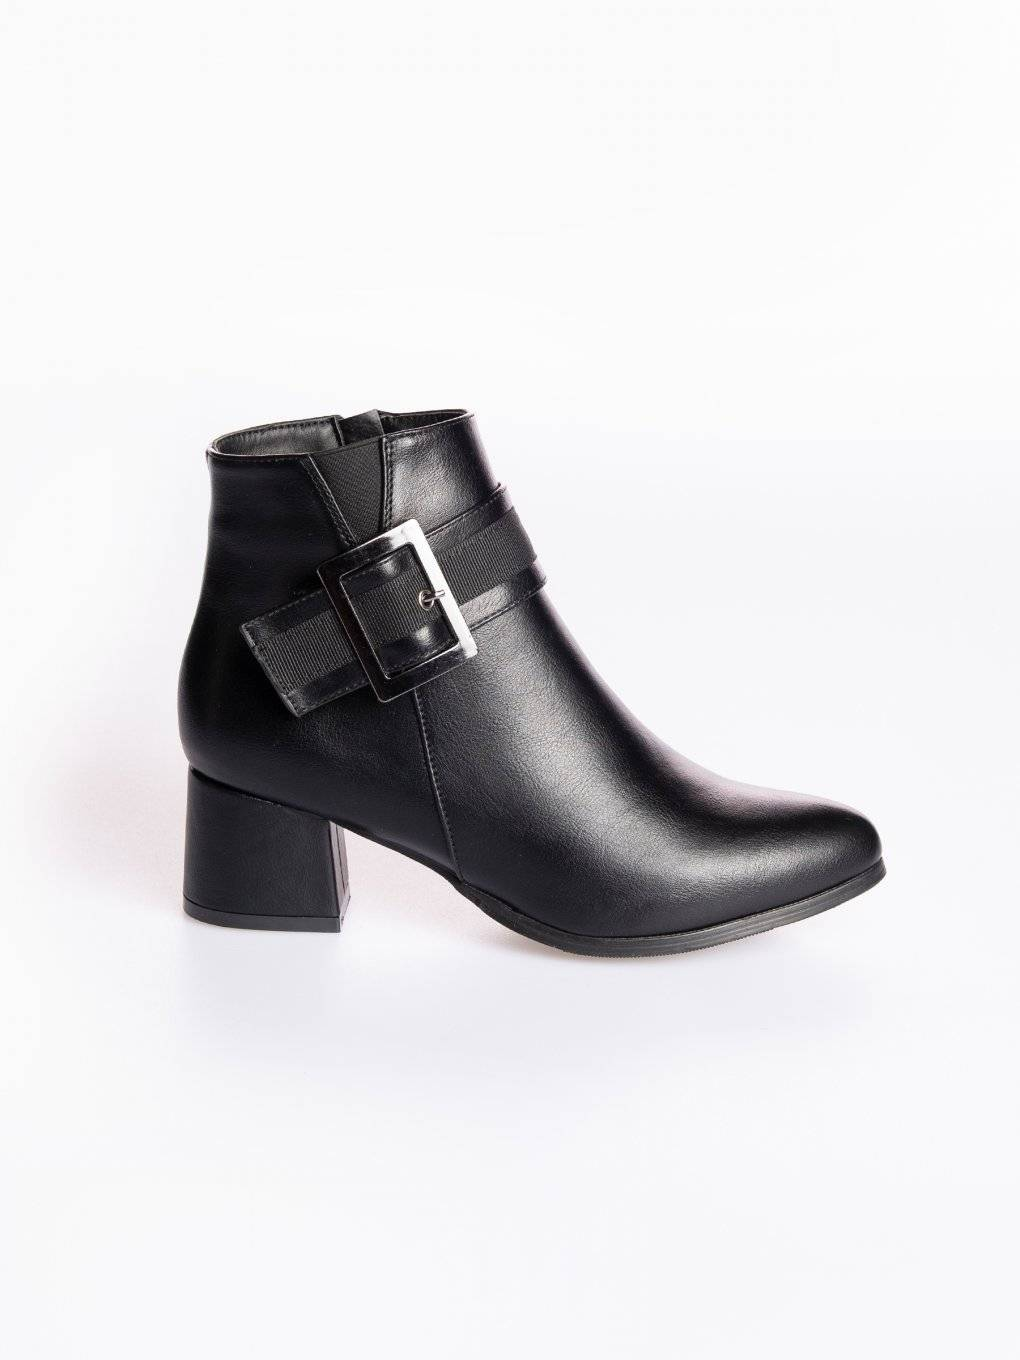 Block heeled ankle boots with buckle detail